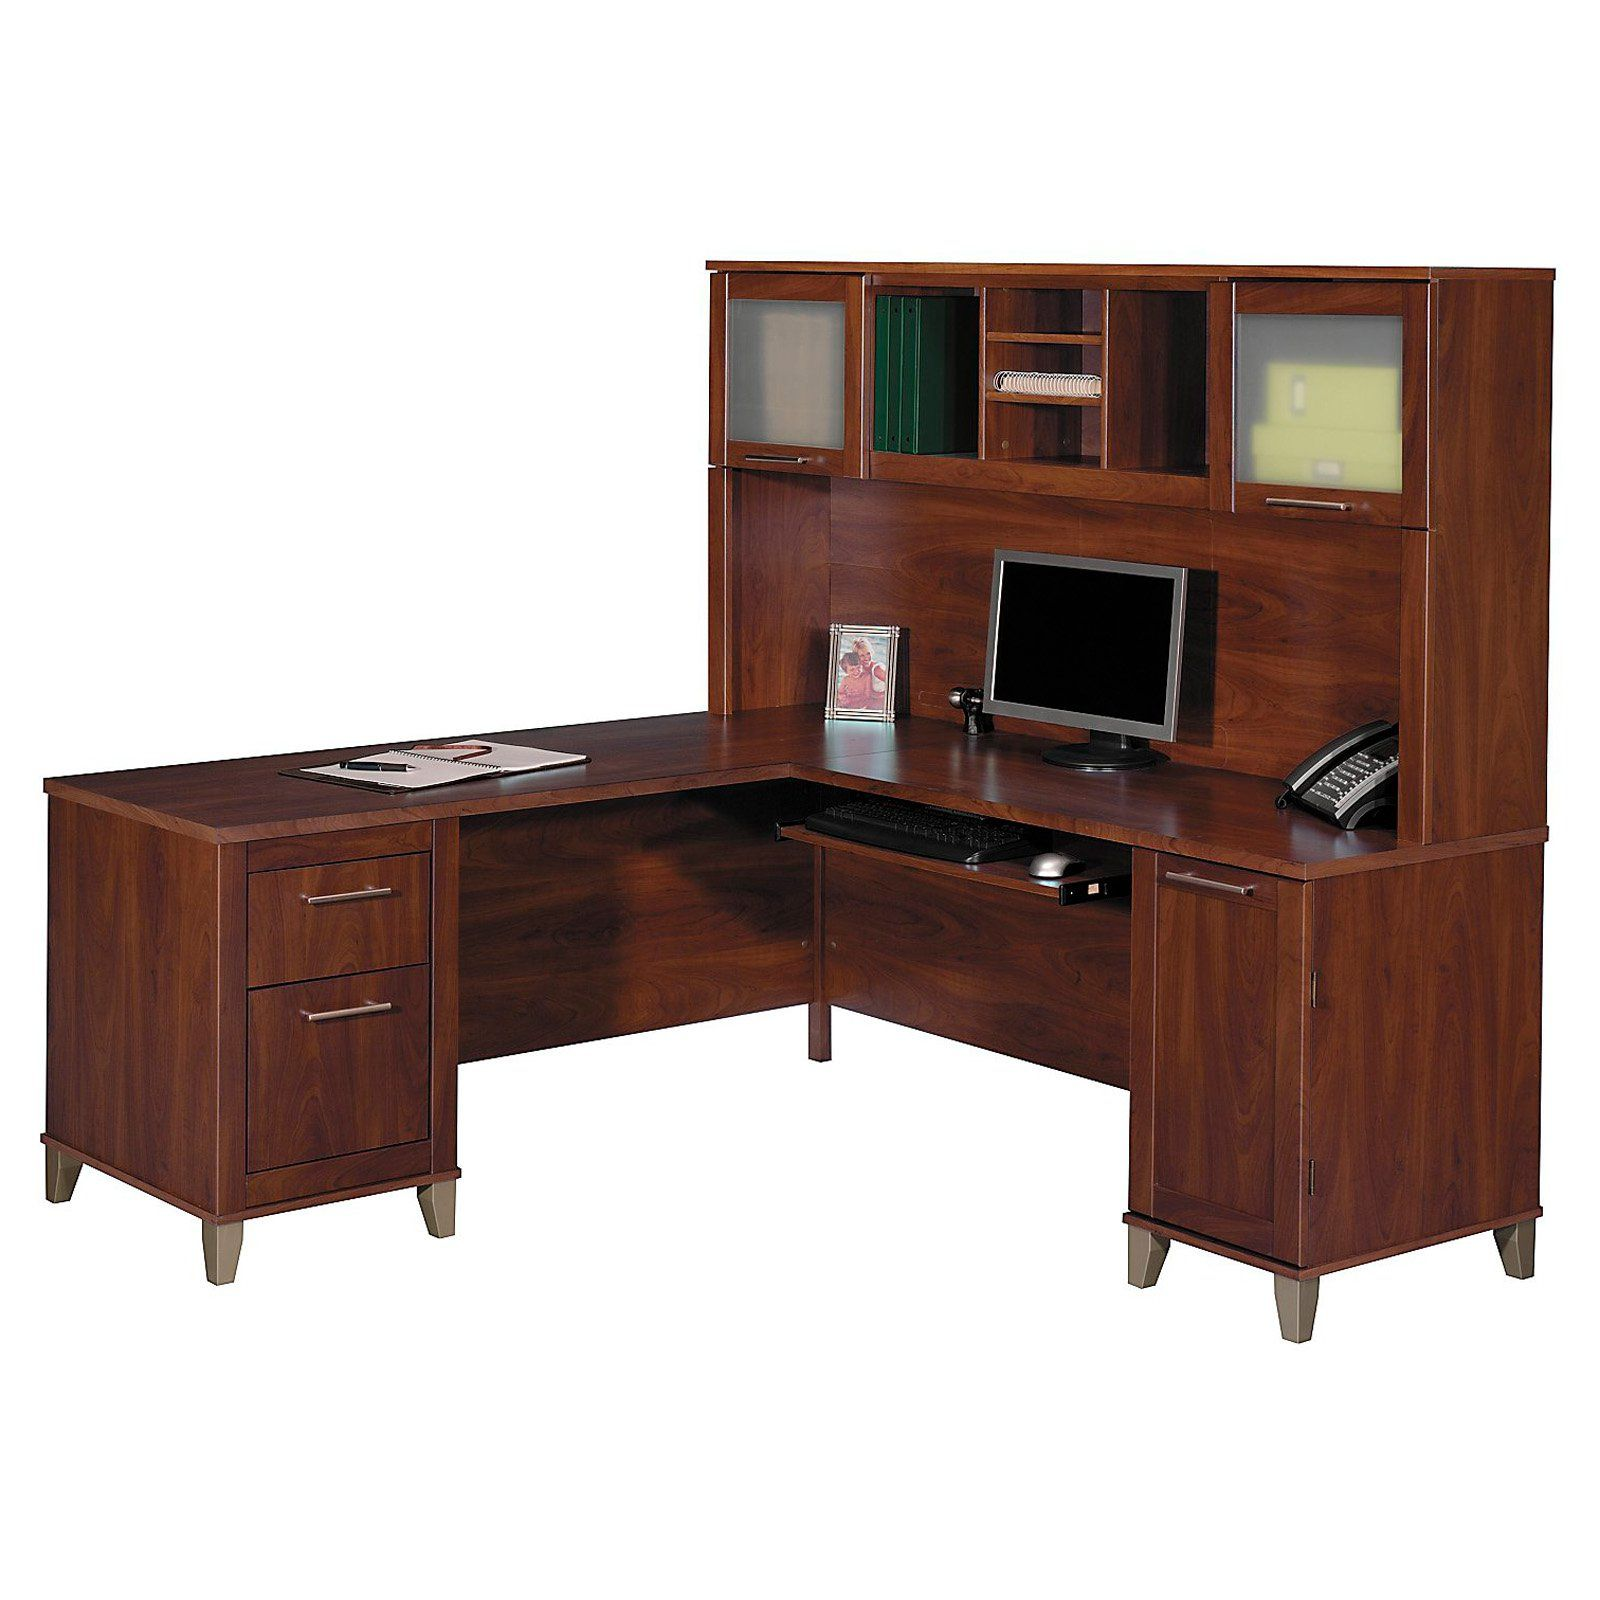 front office in studio desk furniture c business bow bush pin